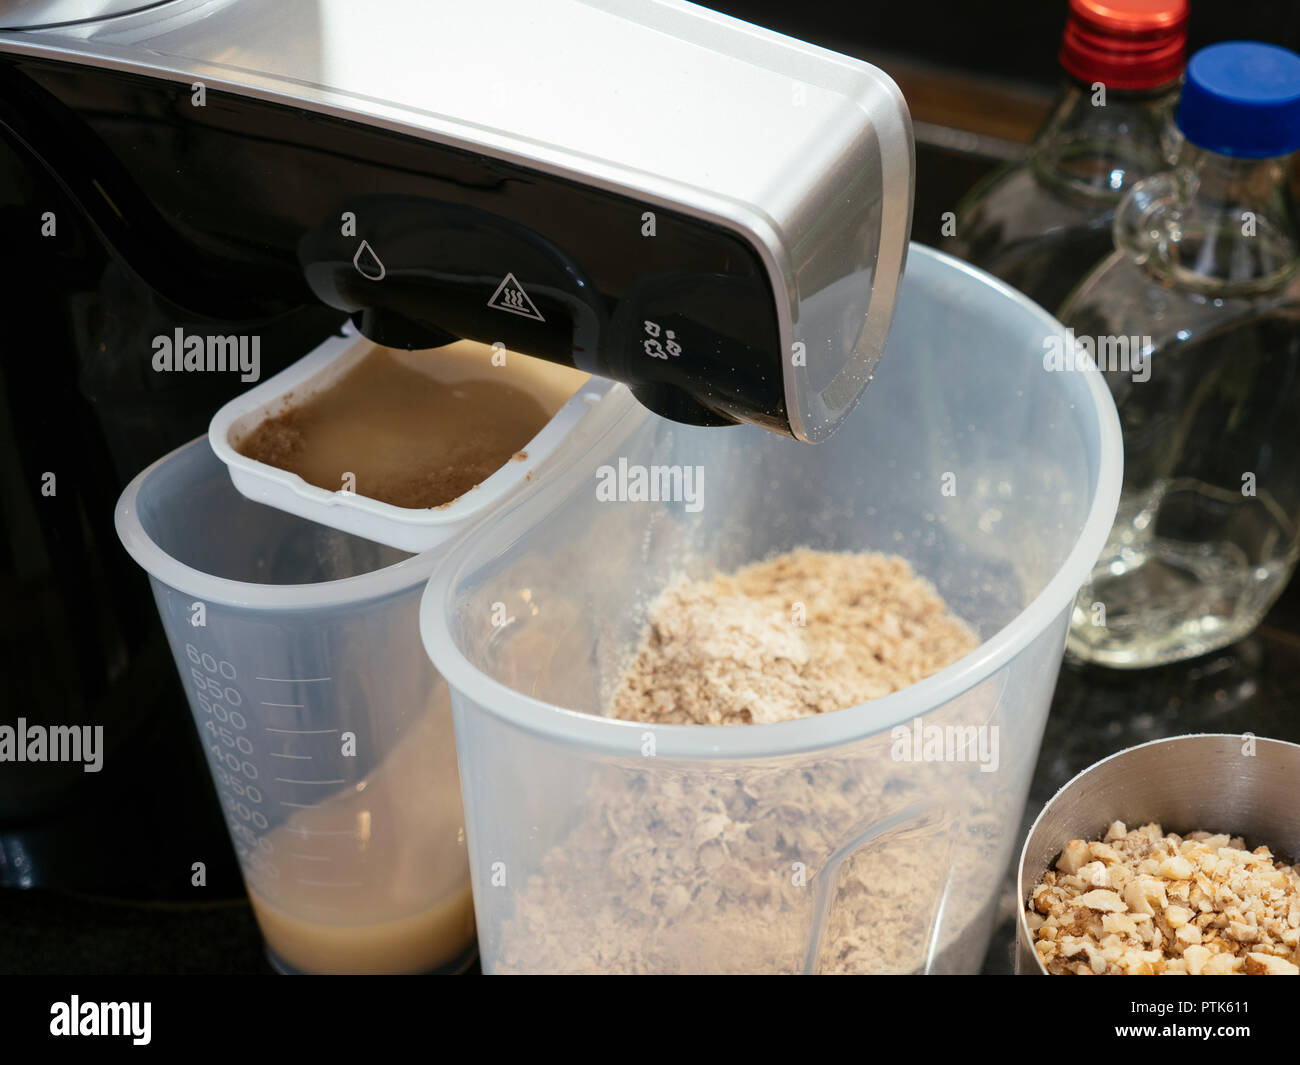 Homemade cold-pressed walnut oil being extracted by an oil press machine. Stock Photo